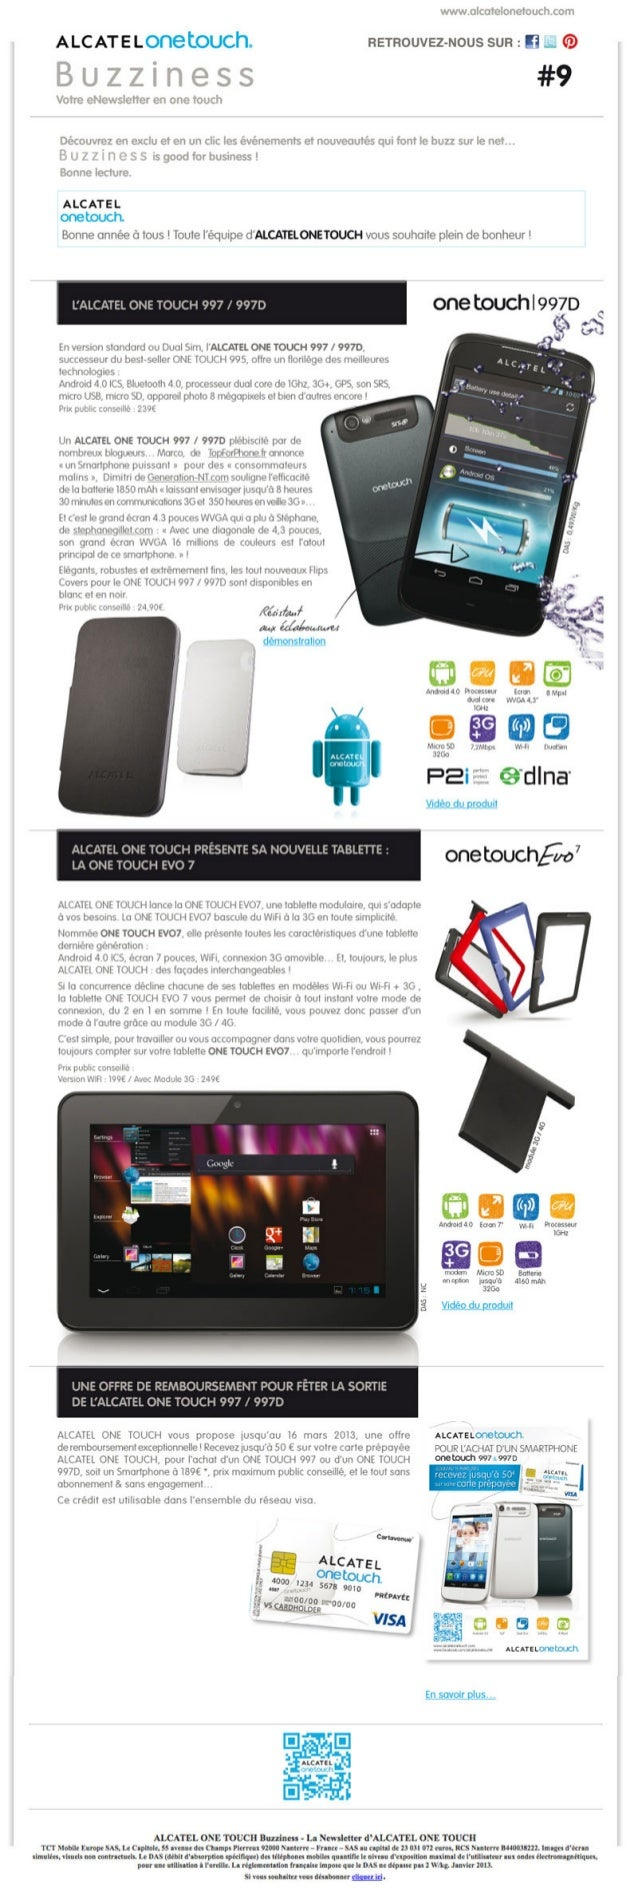 ALCATEL ONE TOUCH - Buzziness9